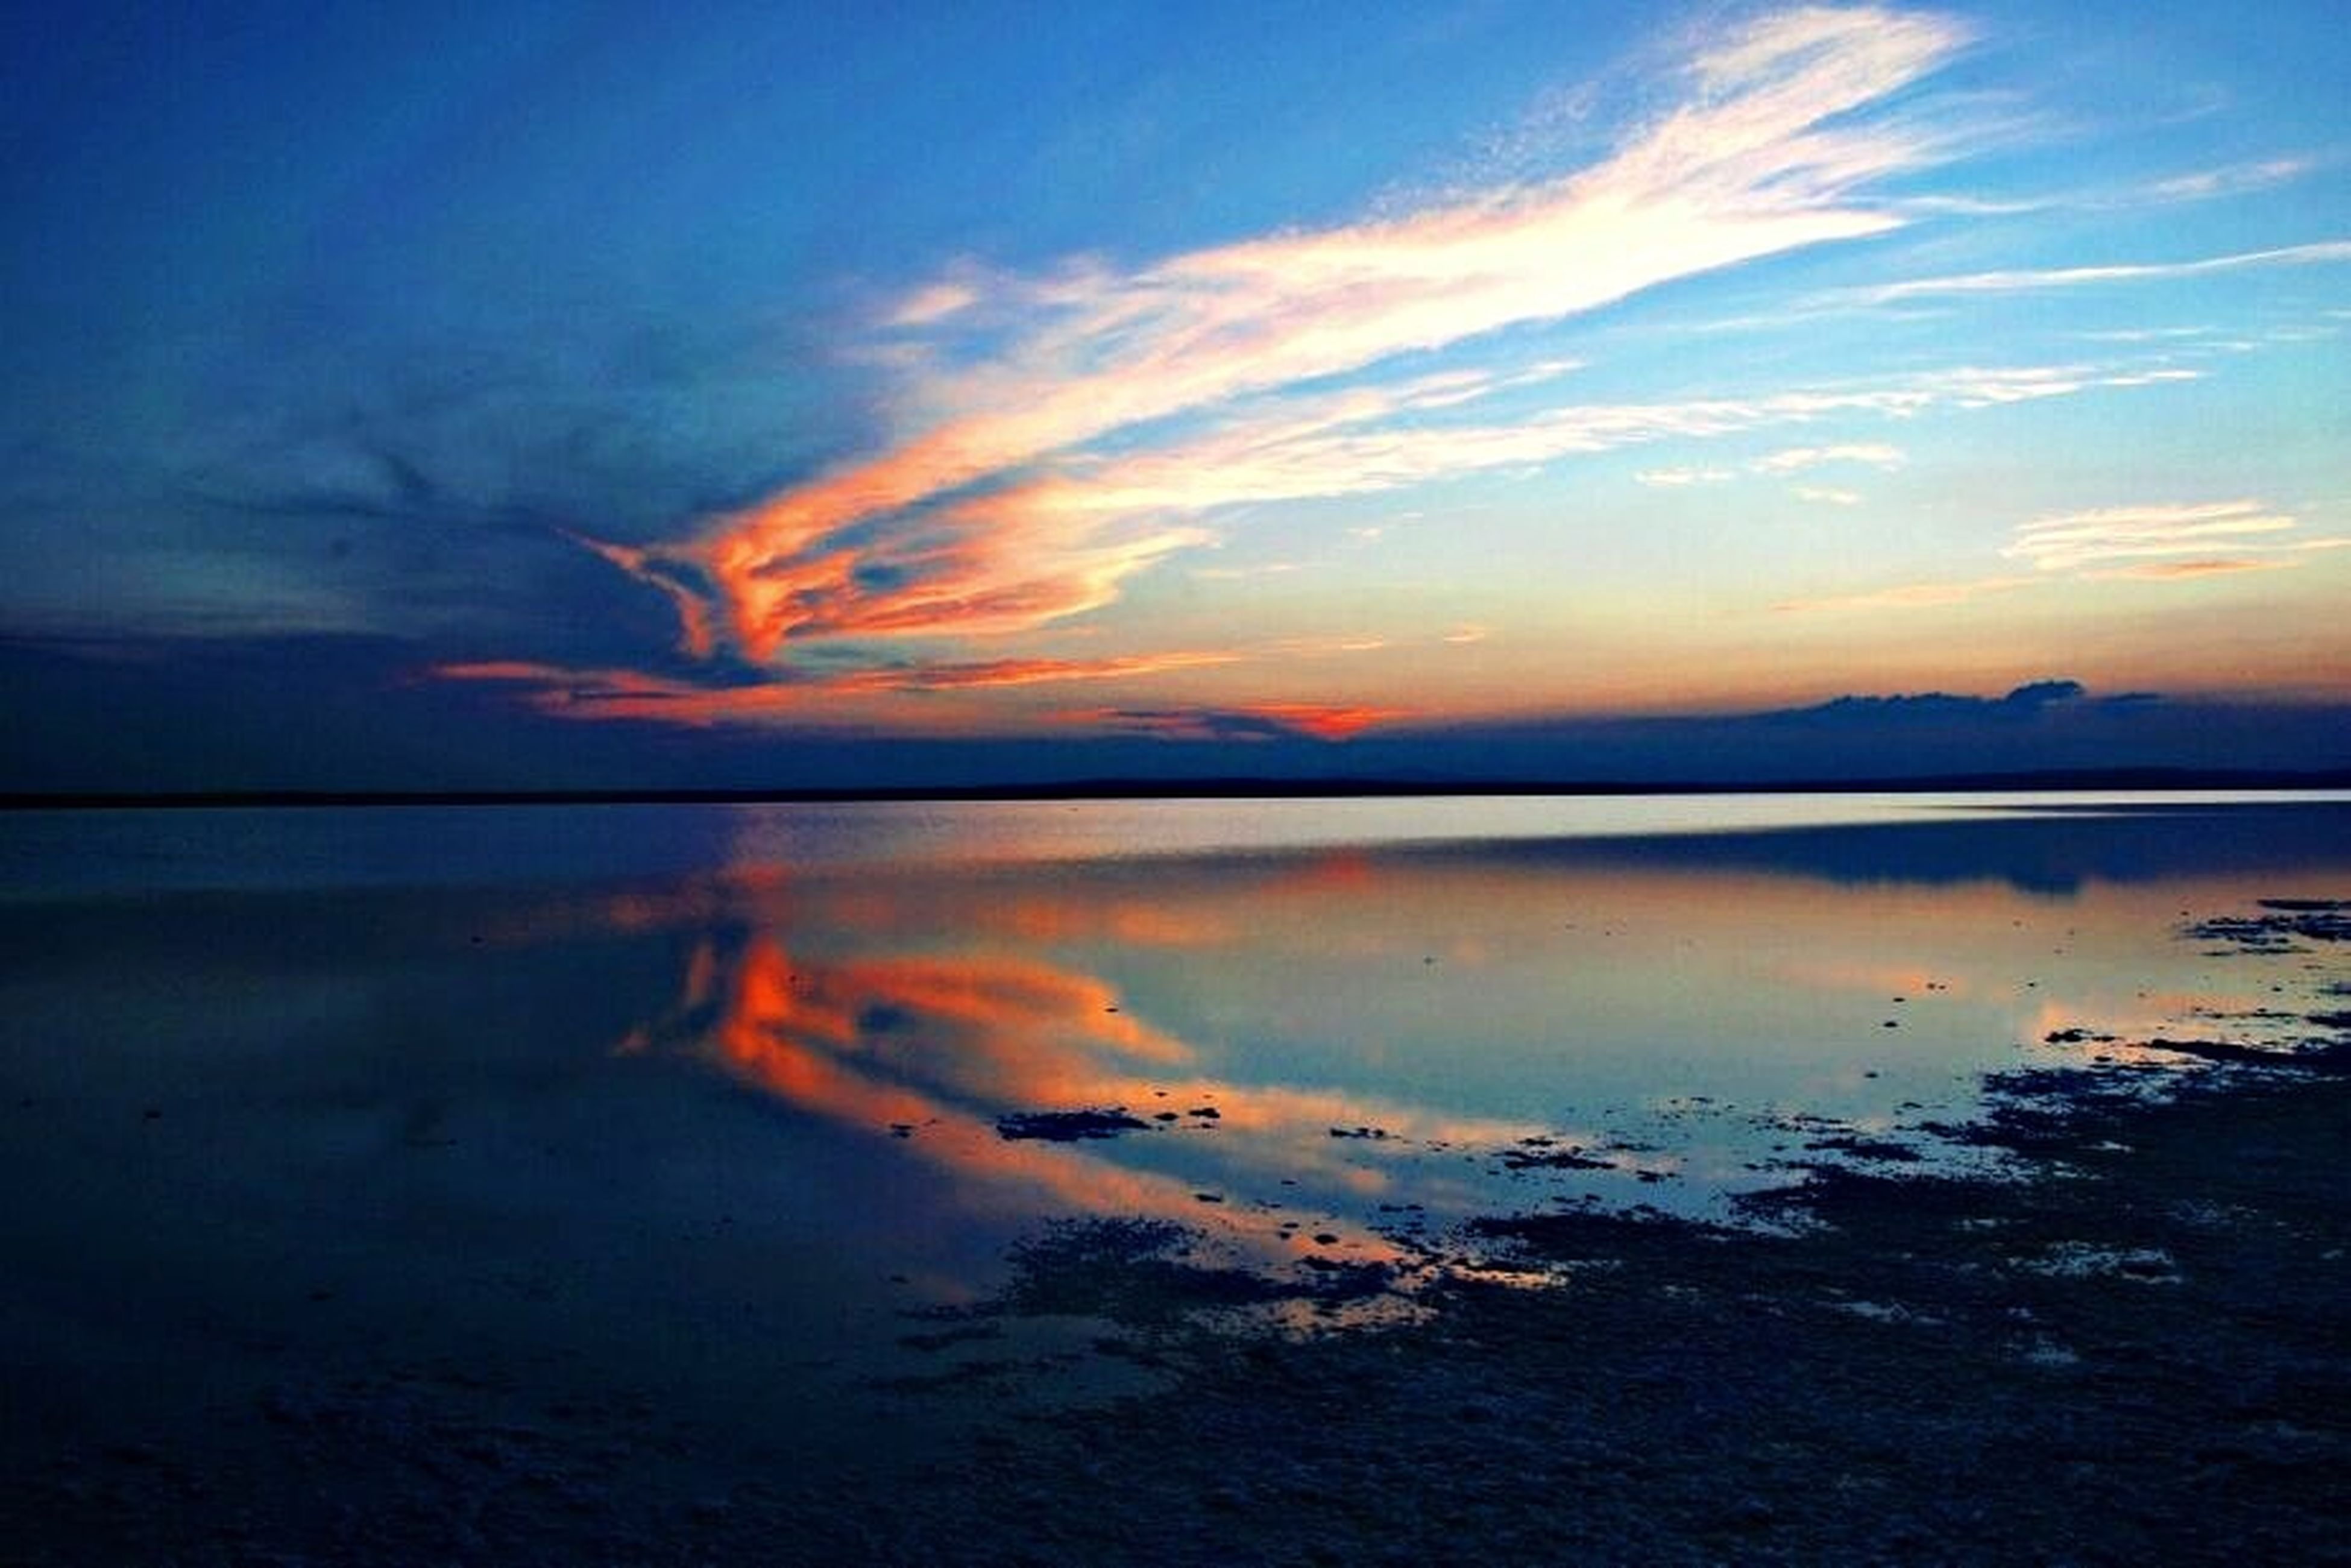 water, scenics, tranquil scene, sunset, tranquility, sky, beauty in nature, reflection, sea, cloud - sky, idyllic, nature, beach, cloud, lake, dusk, calm, orange color, silhouette, shore